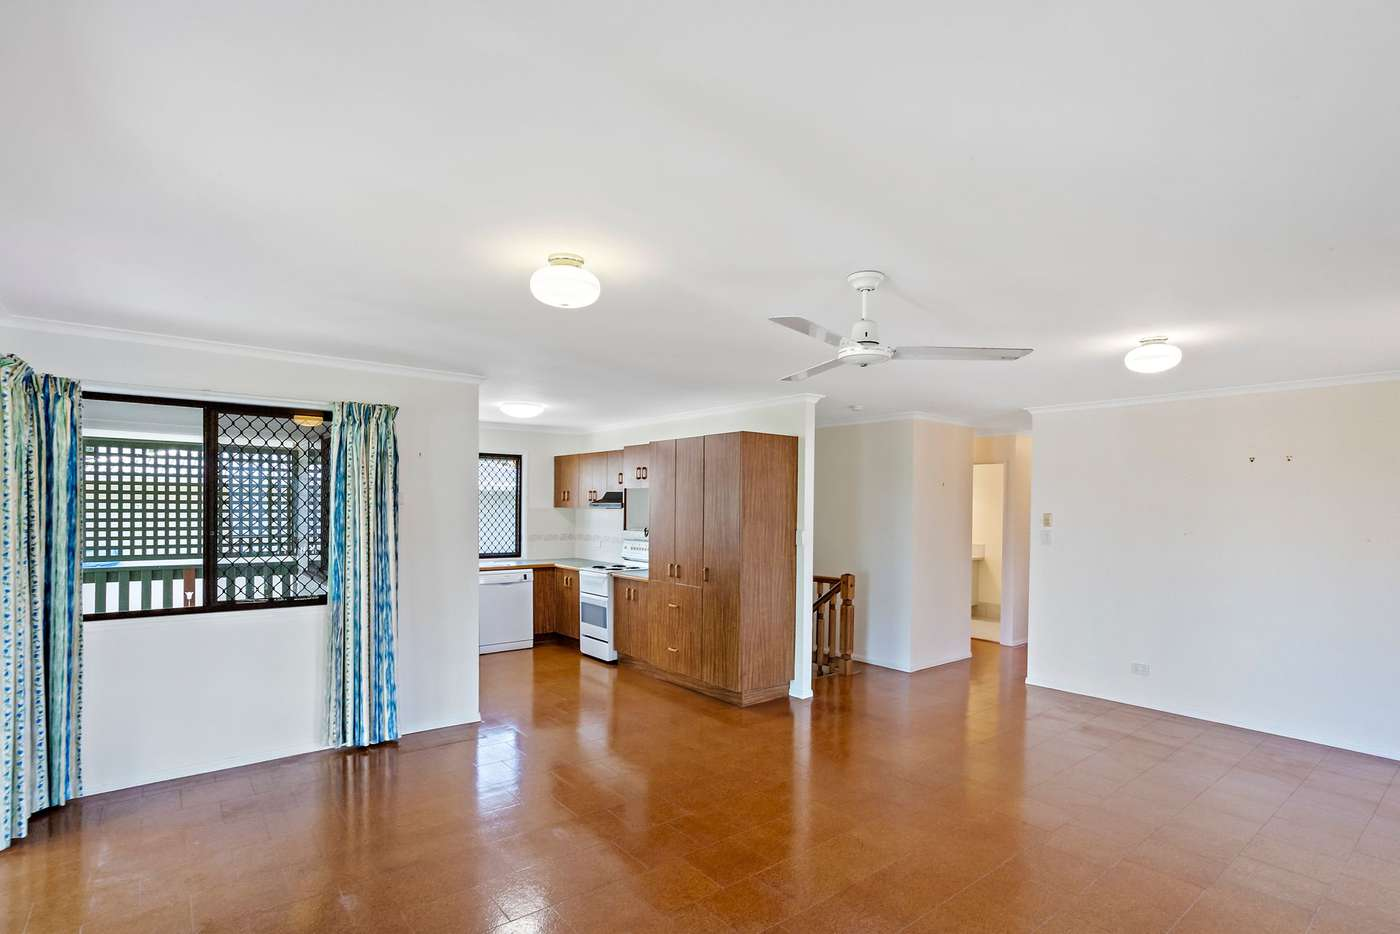 Sixth view of Homely house listing, 18 Cambridge Court, Tewantin QLD 4565